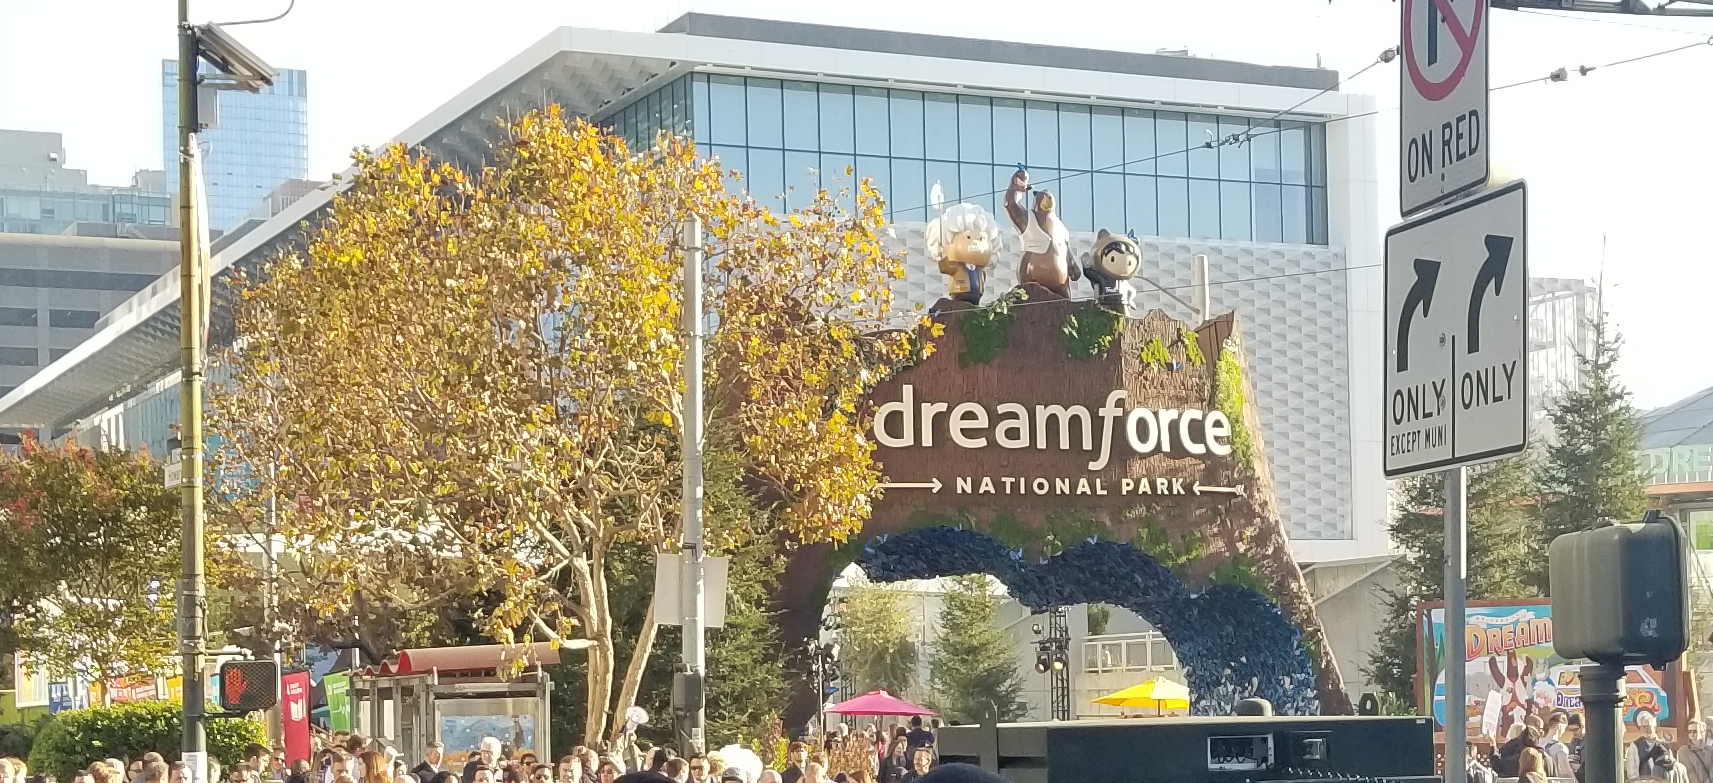 Dreamforce Park 2019 - Redpath